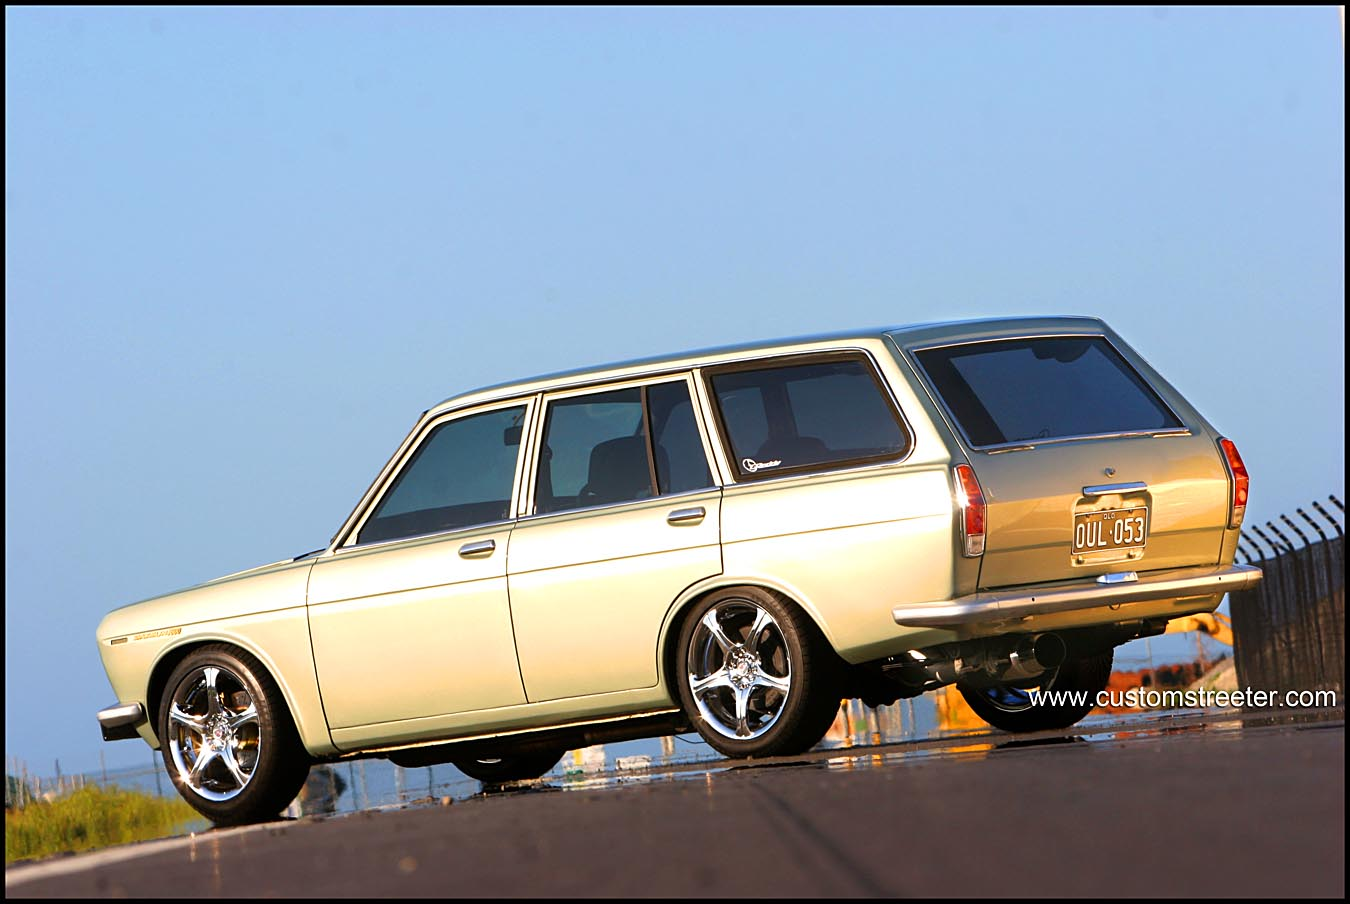 Datsun 1600 Wagon, Turbo powered Japanese vintage automobile. Big Performance from Nissan's SR20DET